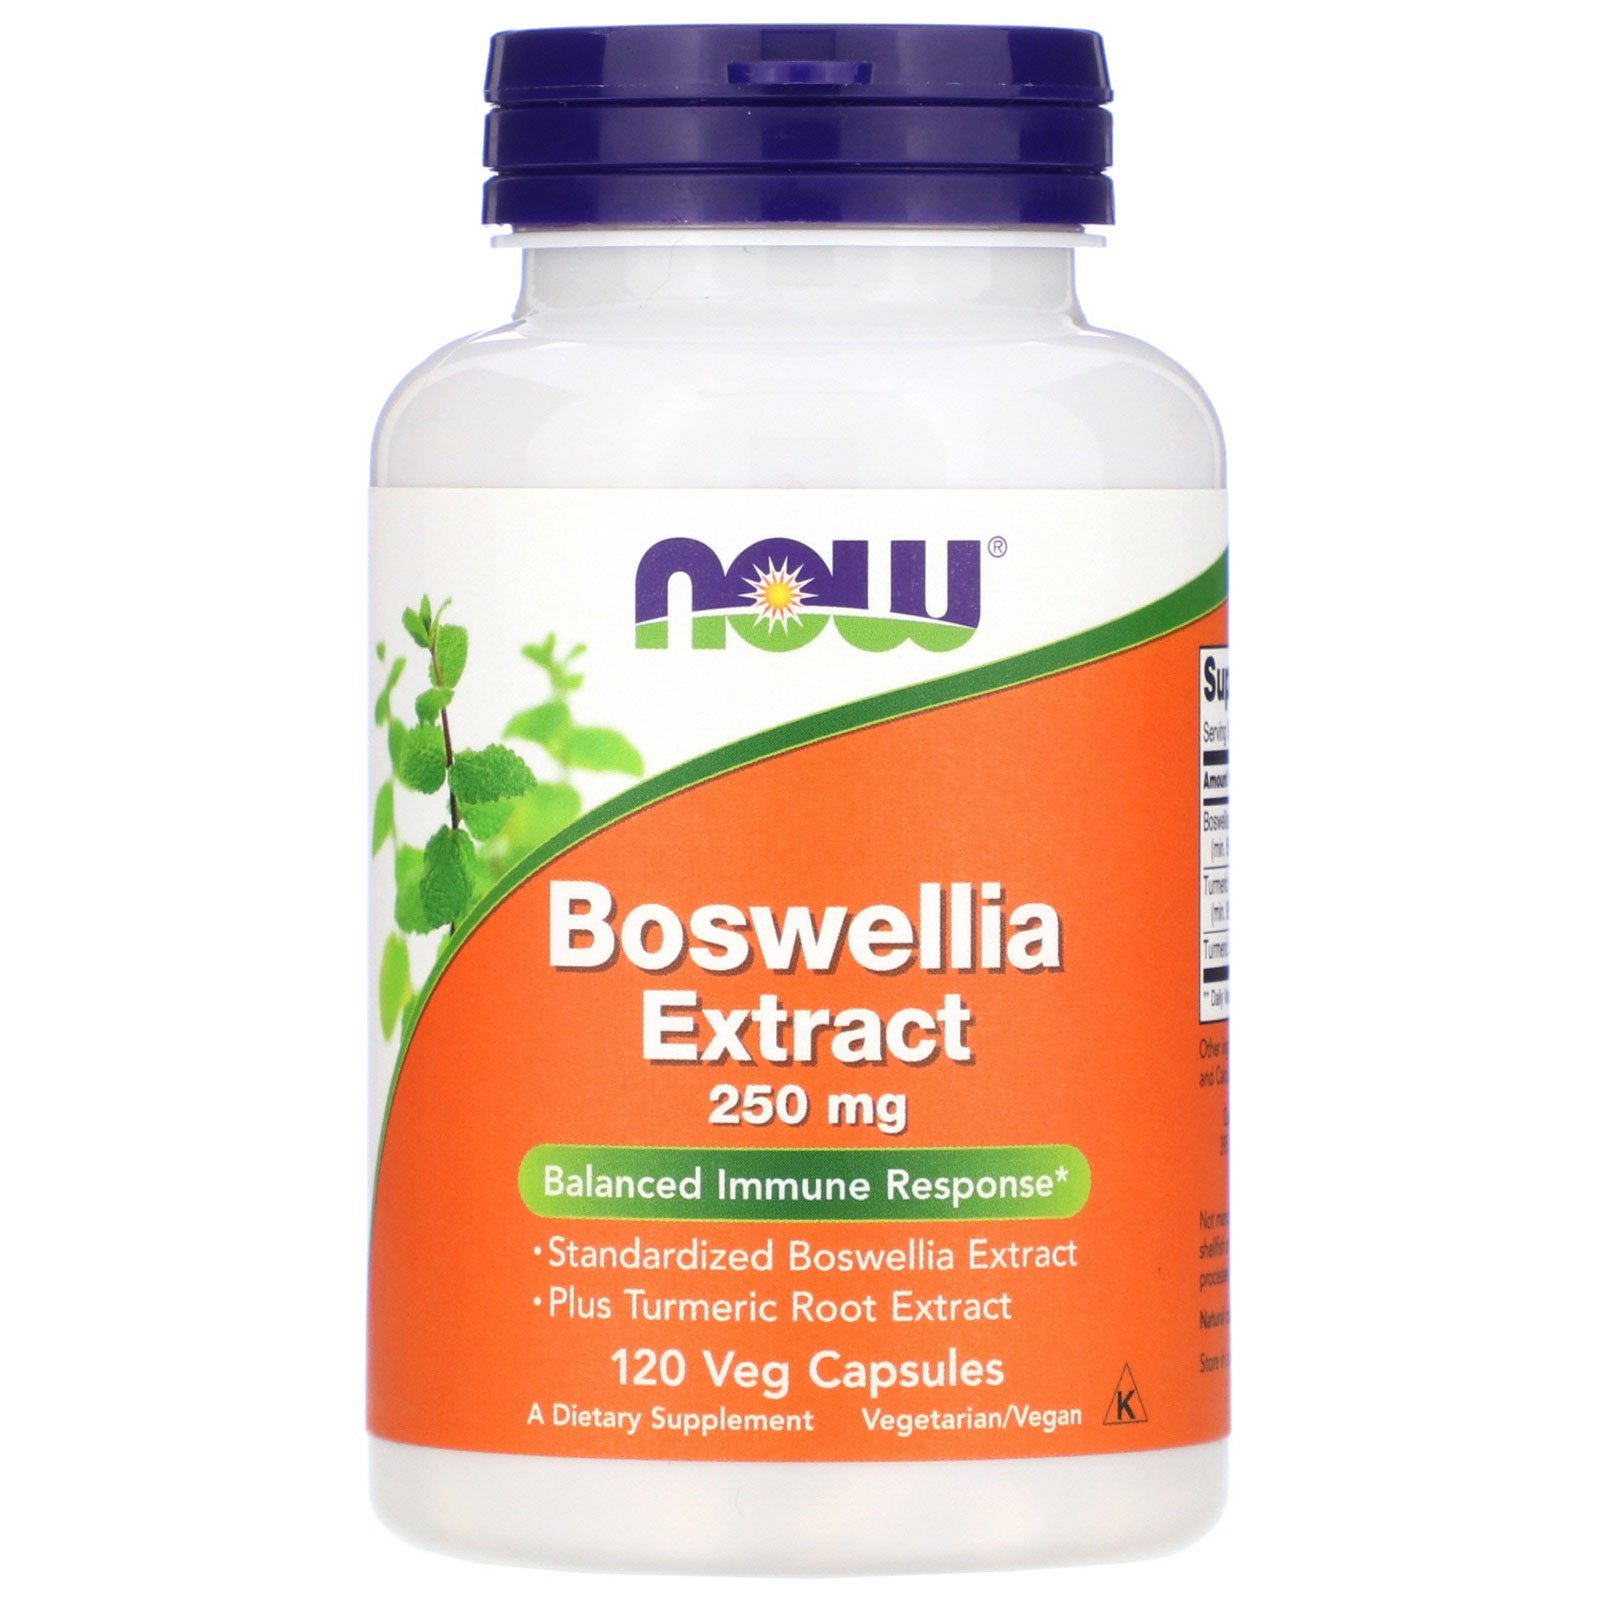 Boswellia Extract, Босвеллия Экстракт 250 мг - 120 капсул